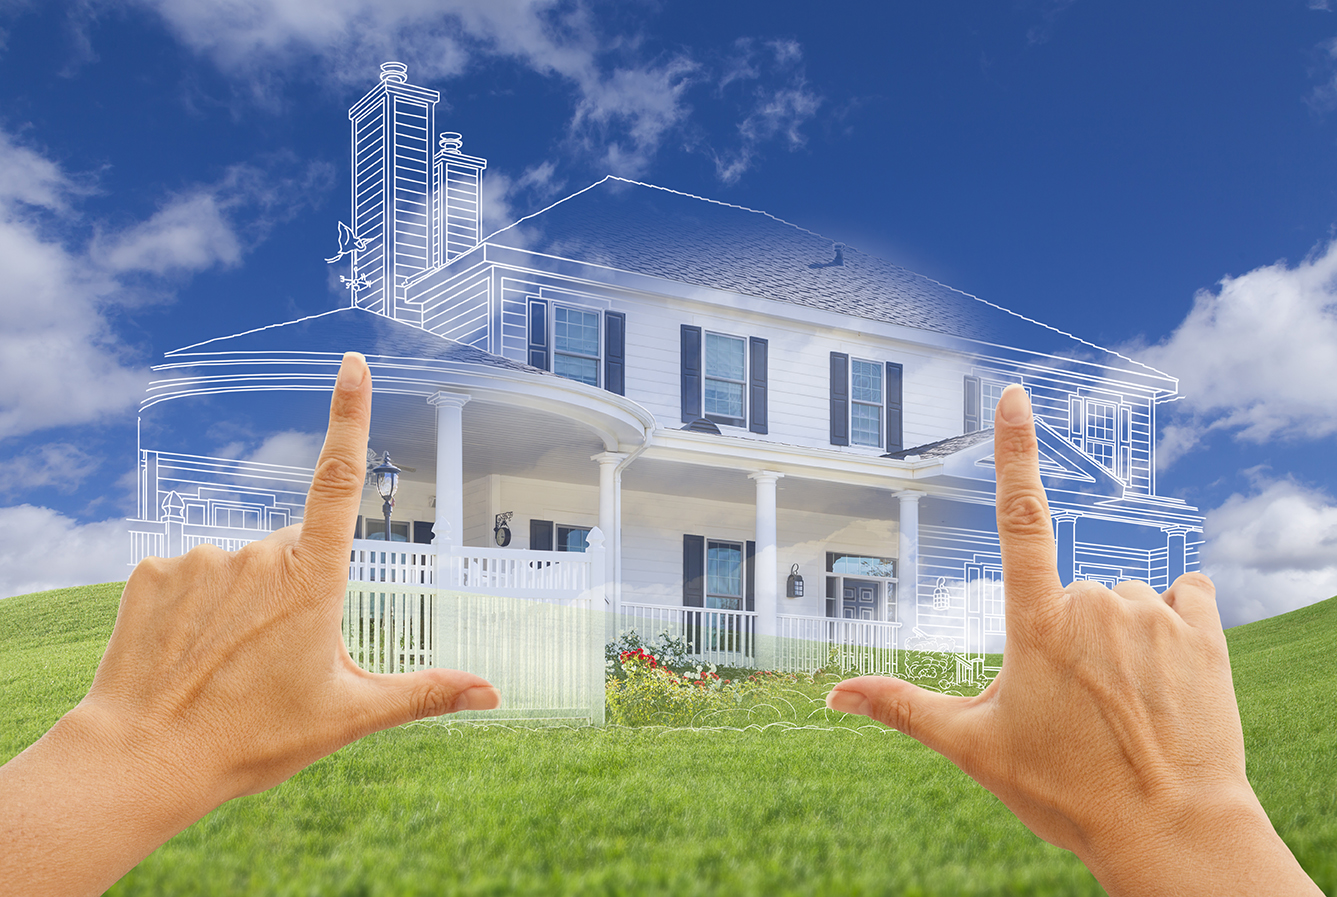 Top Tips To Buy Land And Build Your Dream Home